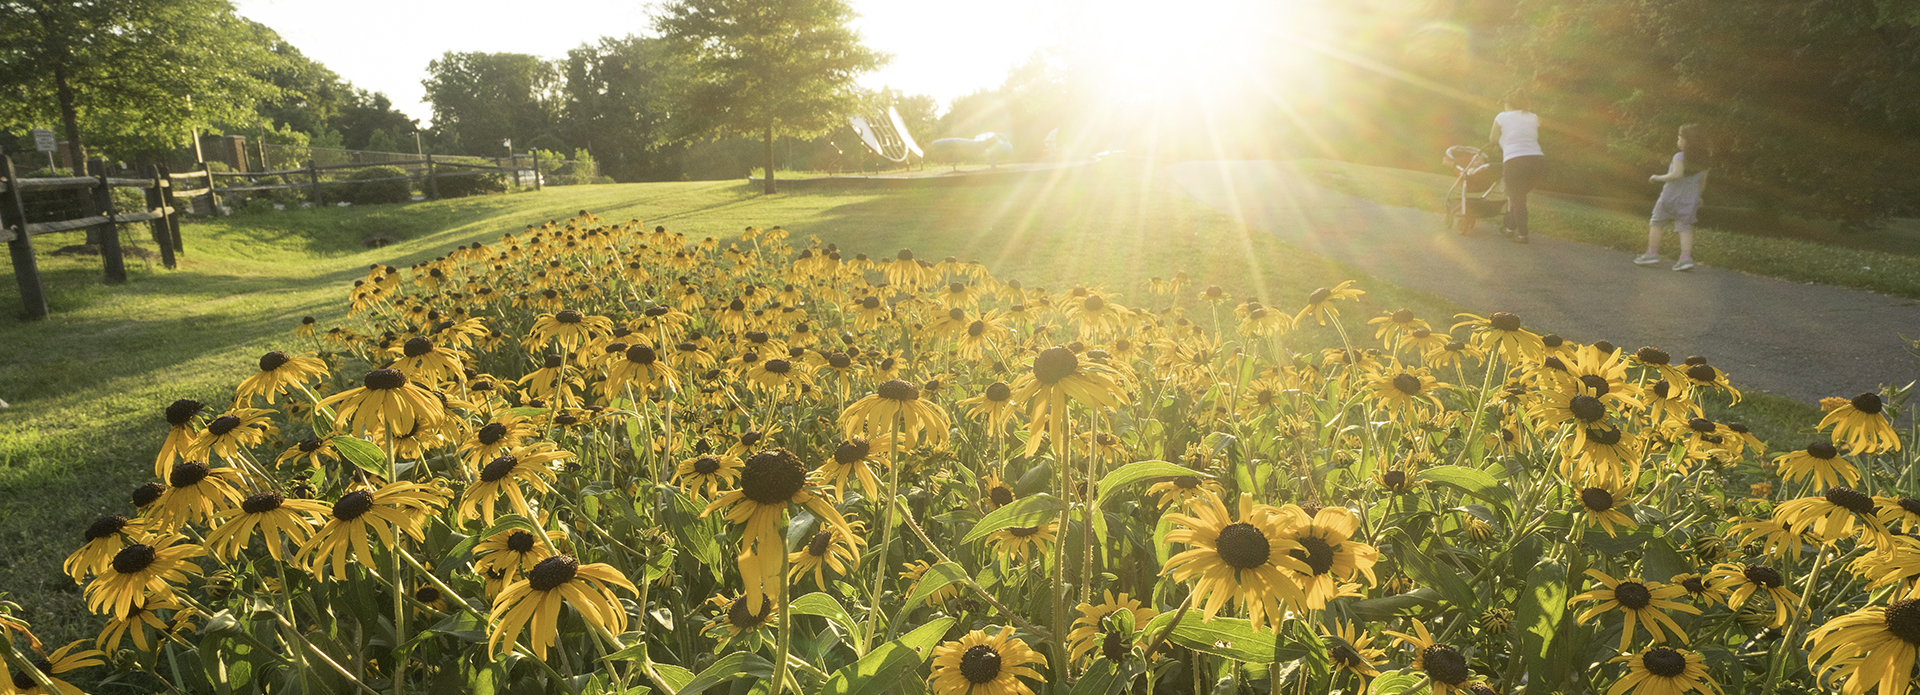 Summer sunflowers in a field at sunset at Van Dyck Park